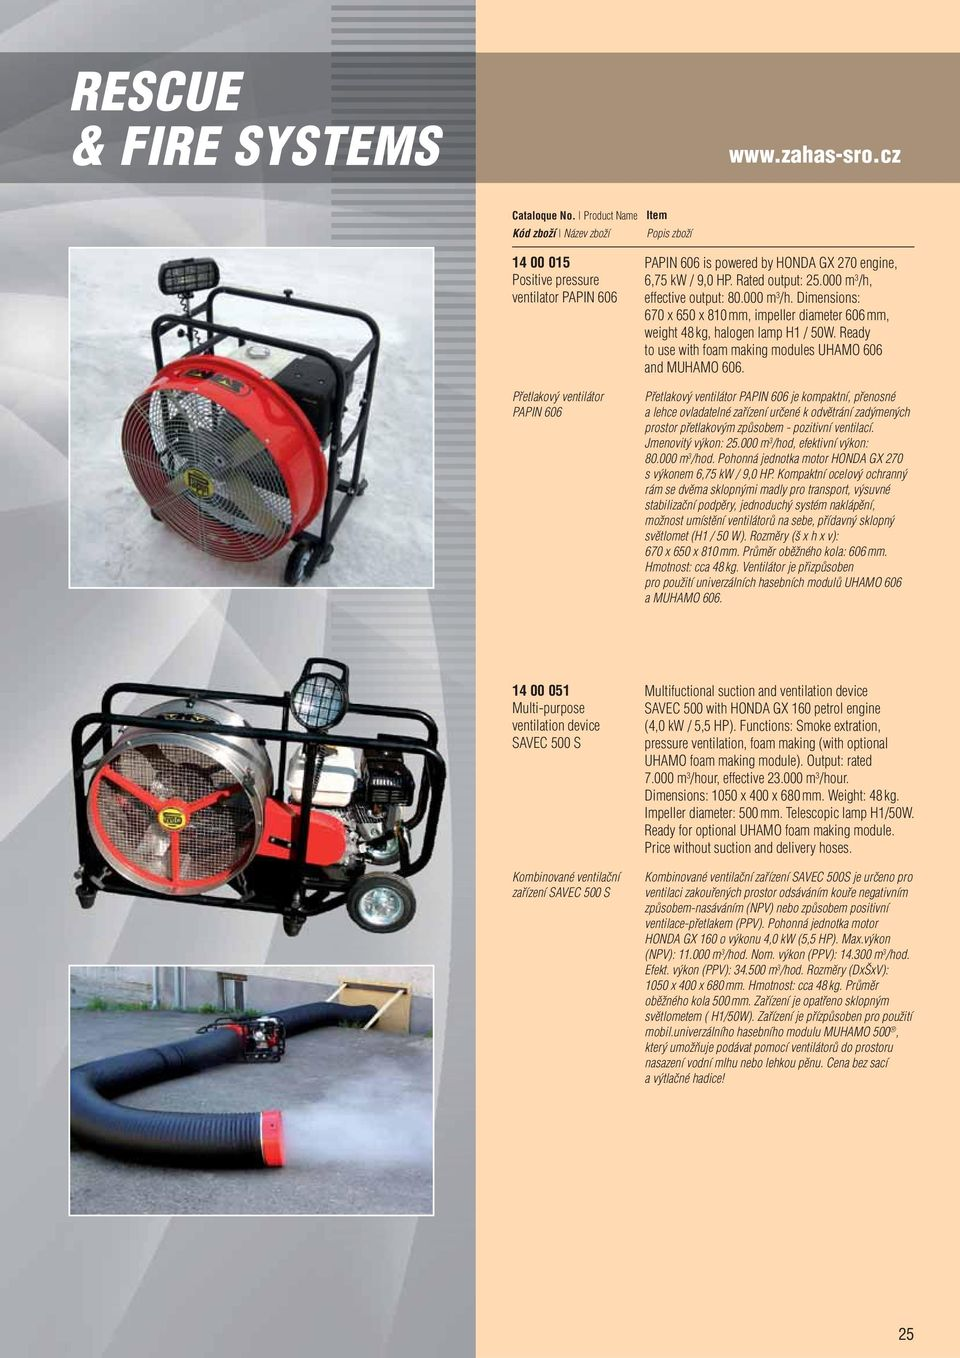 Ready to use with foam making modules UHAMO 606 and MUHAMO 606.